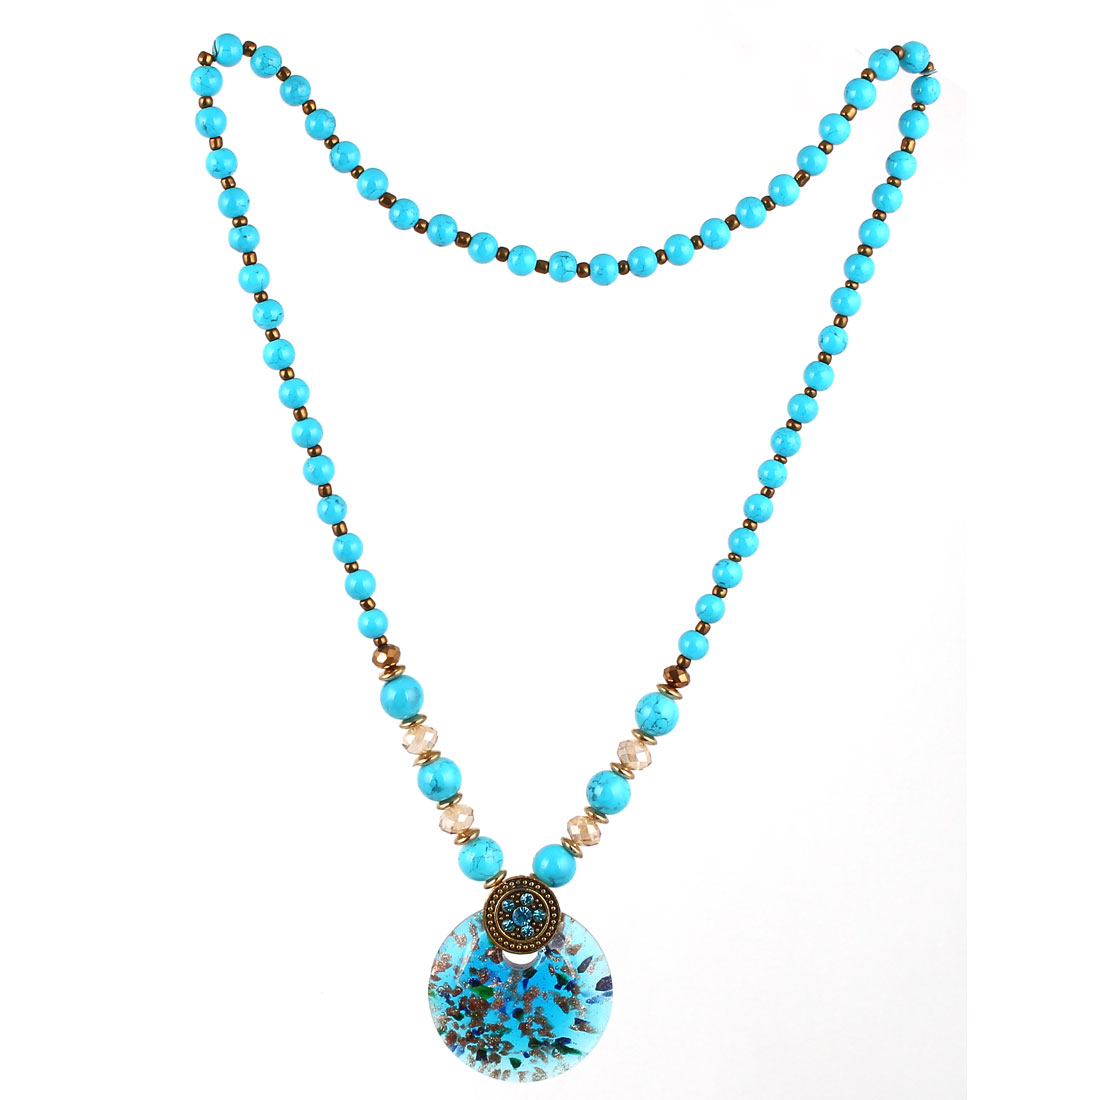 Lady Fashion Jewelry Vintage Style Pendant Crystal Stone Beads Necklace Blue